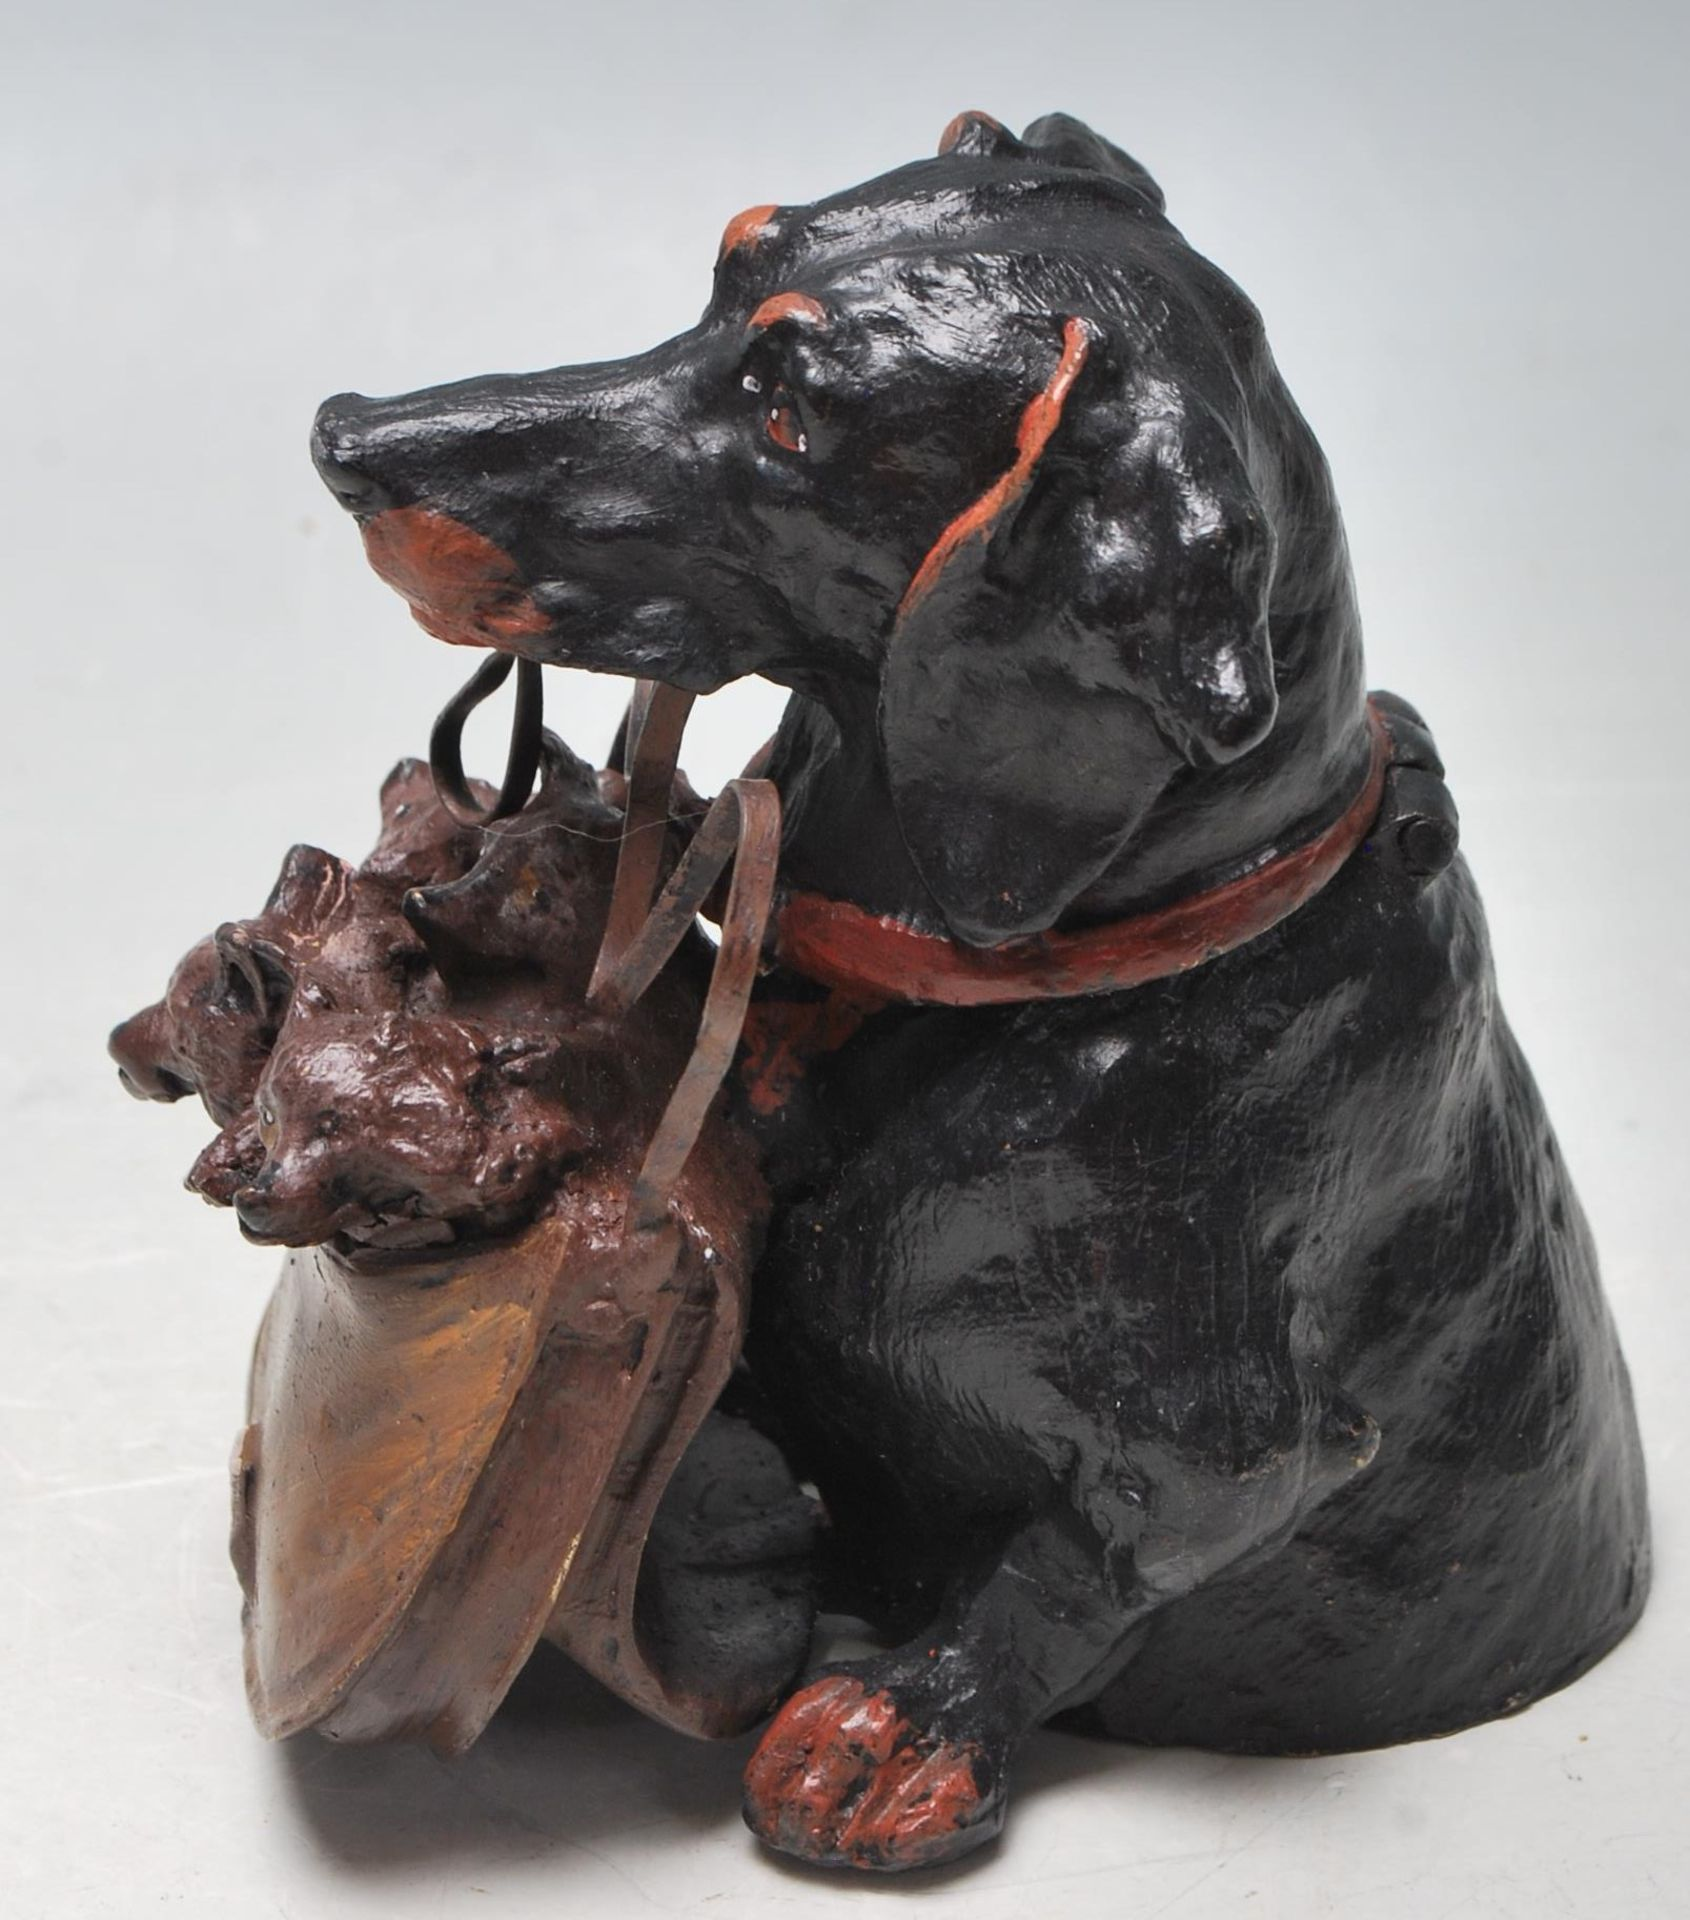 AUSTRIAN STYLE COLDPLAINTED BRONZE DACHSHUND INKWELL - Image 2 of 5